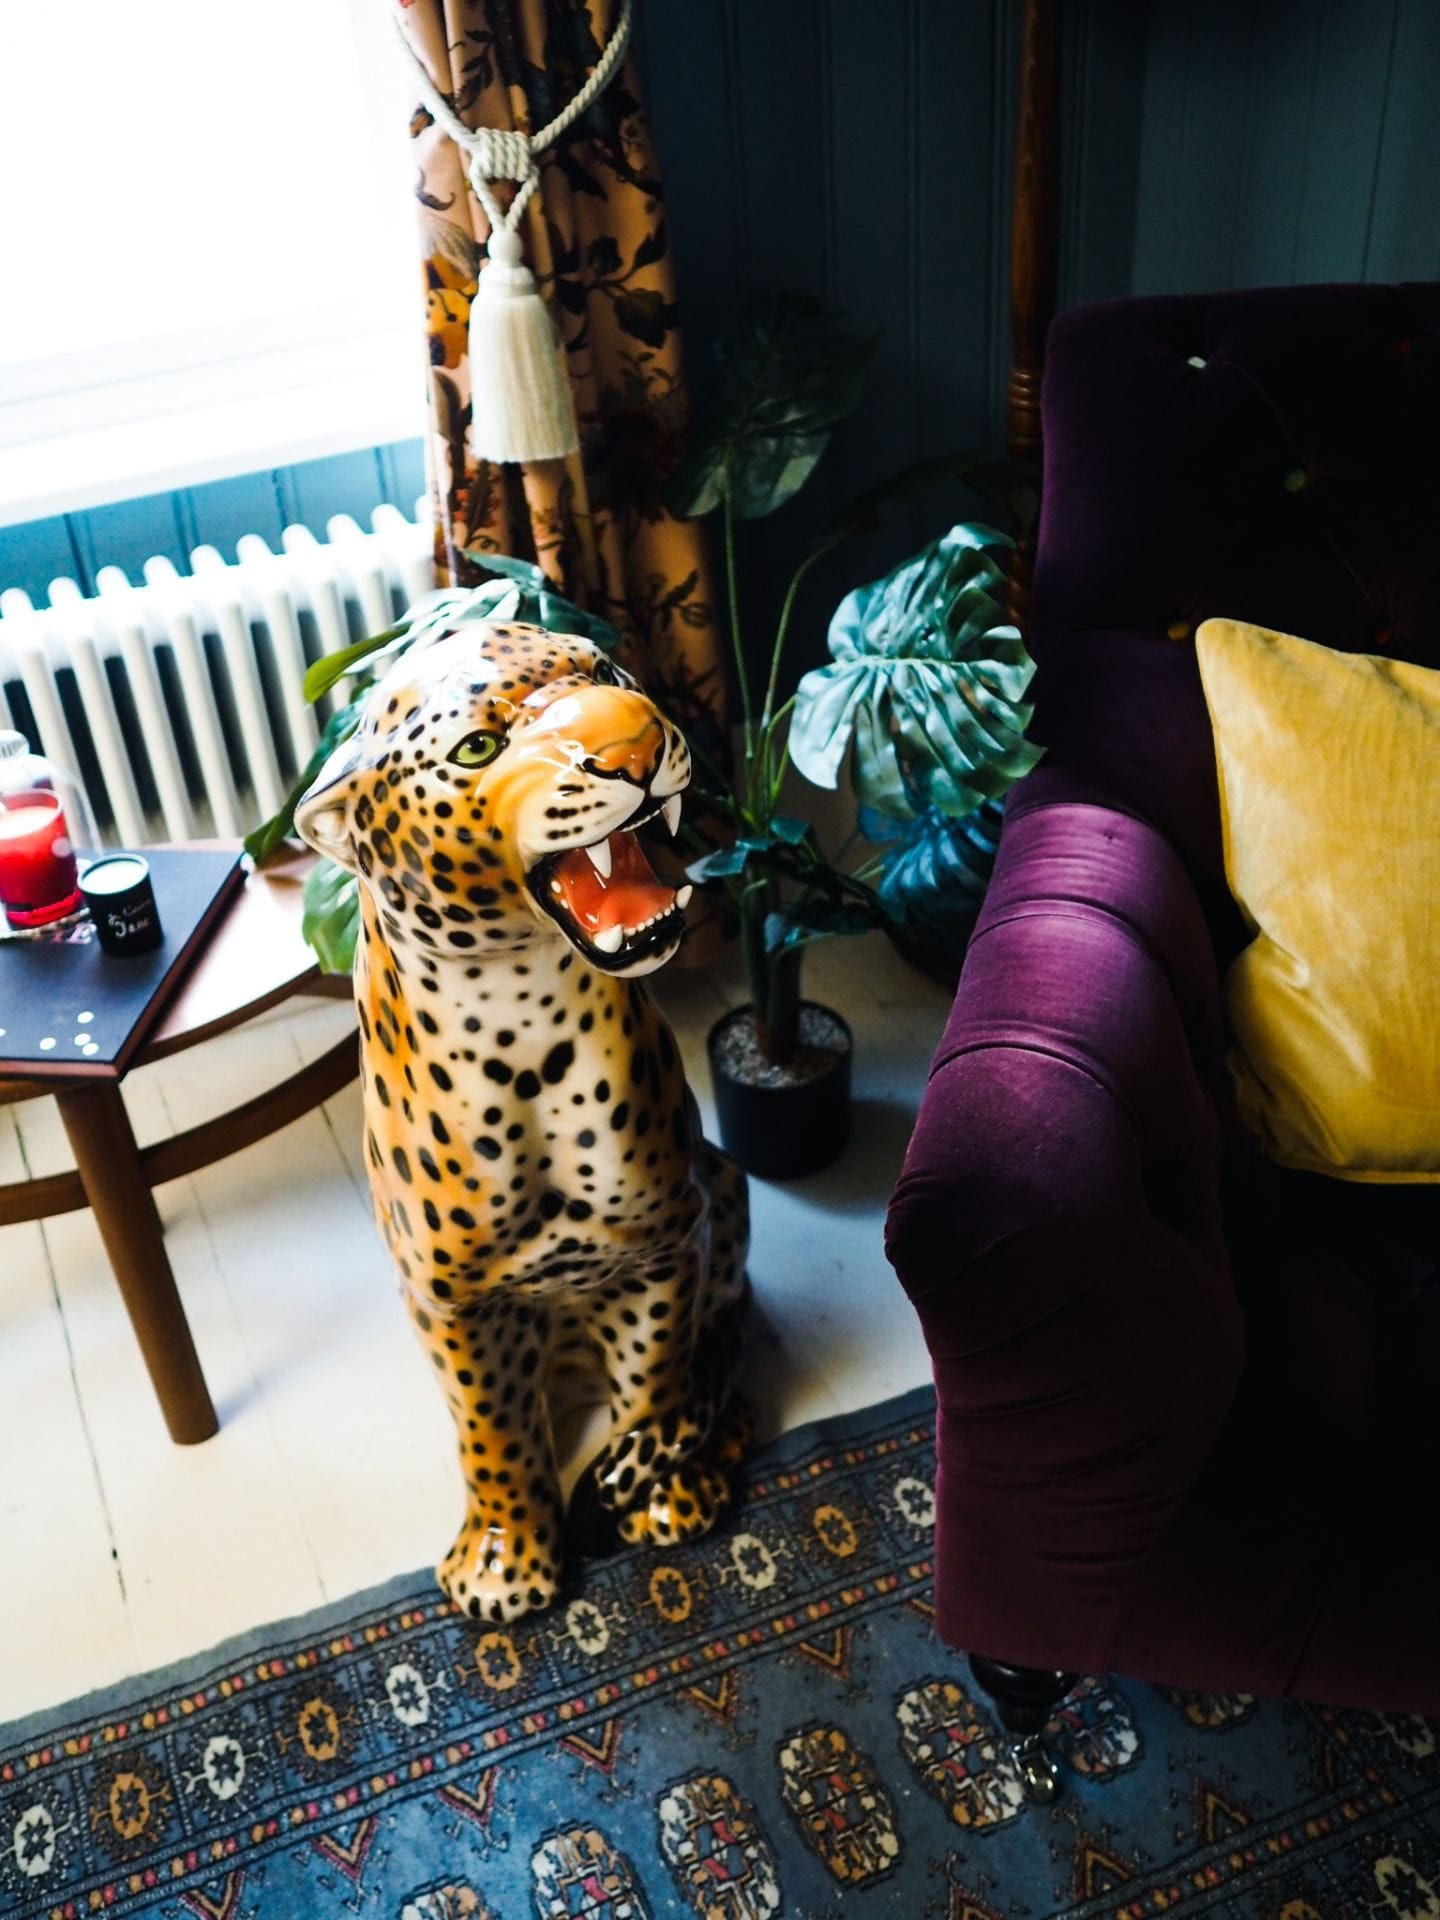 fashion for lunch home leopard figurine statue matalan cushion matalan plant